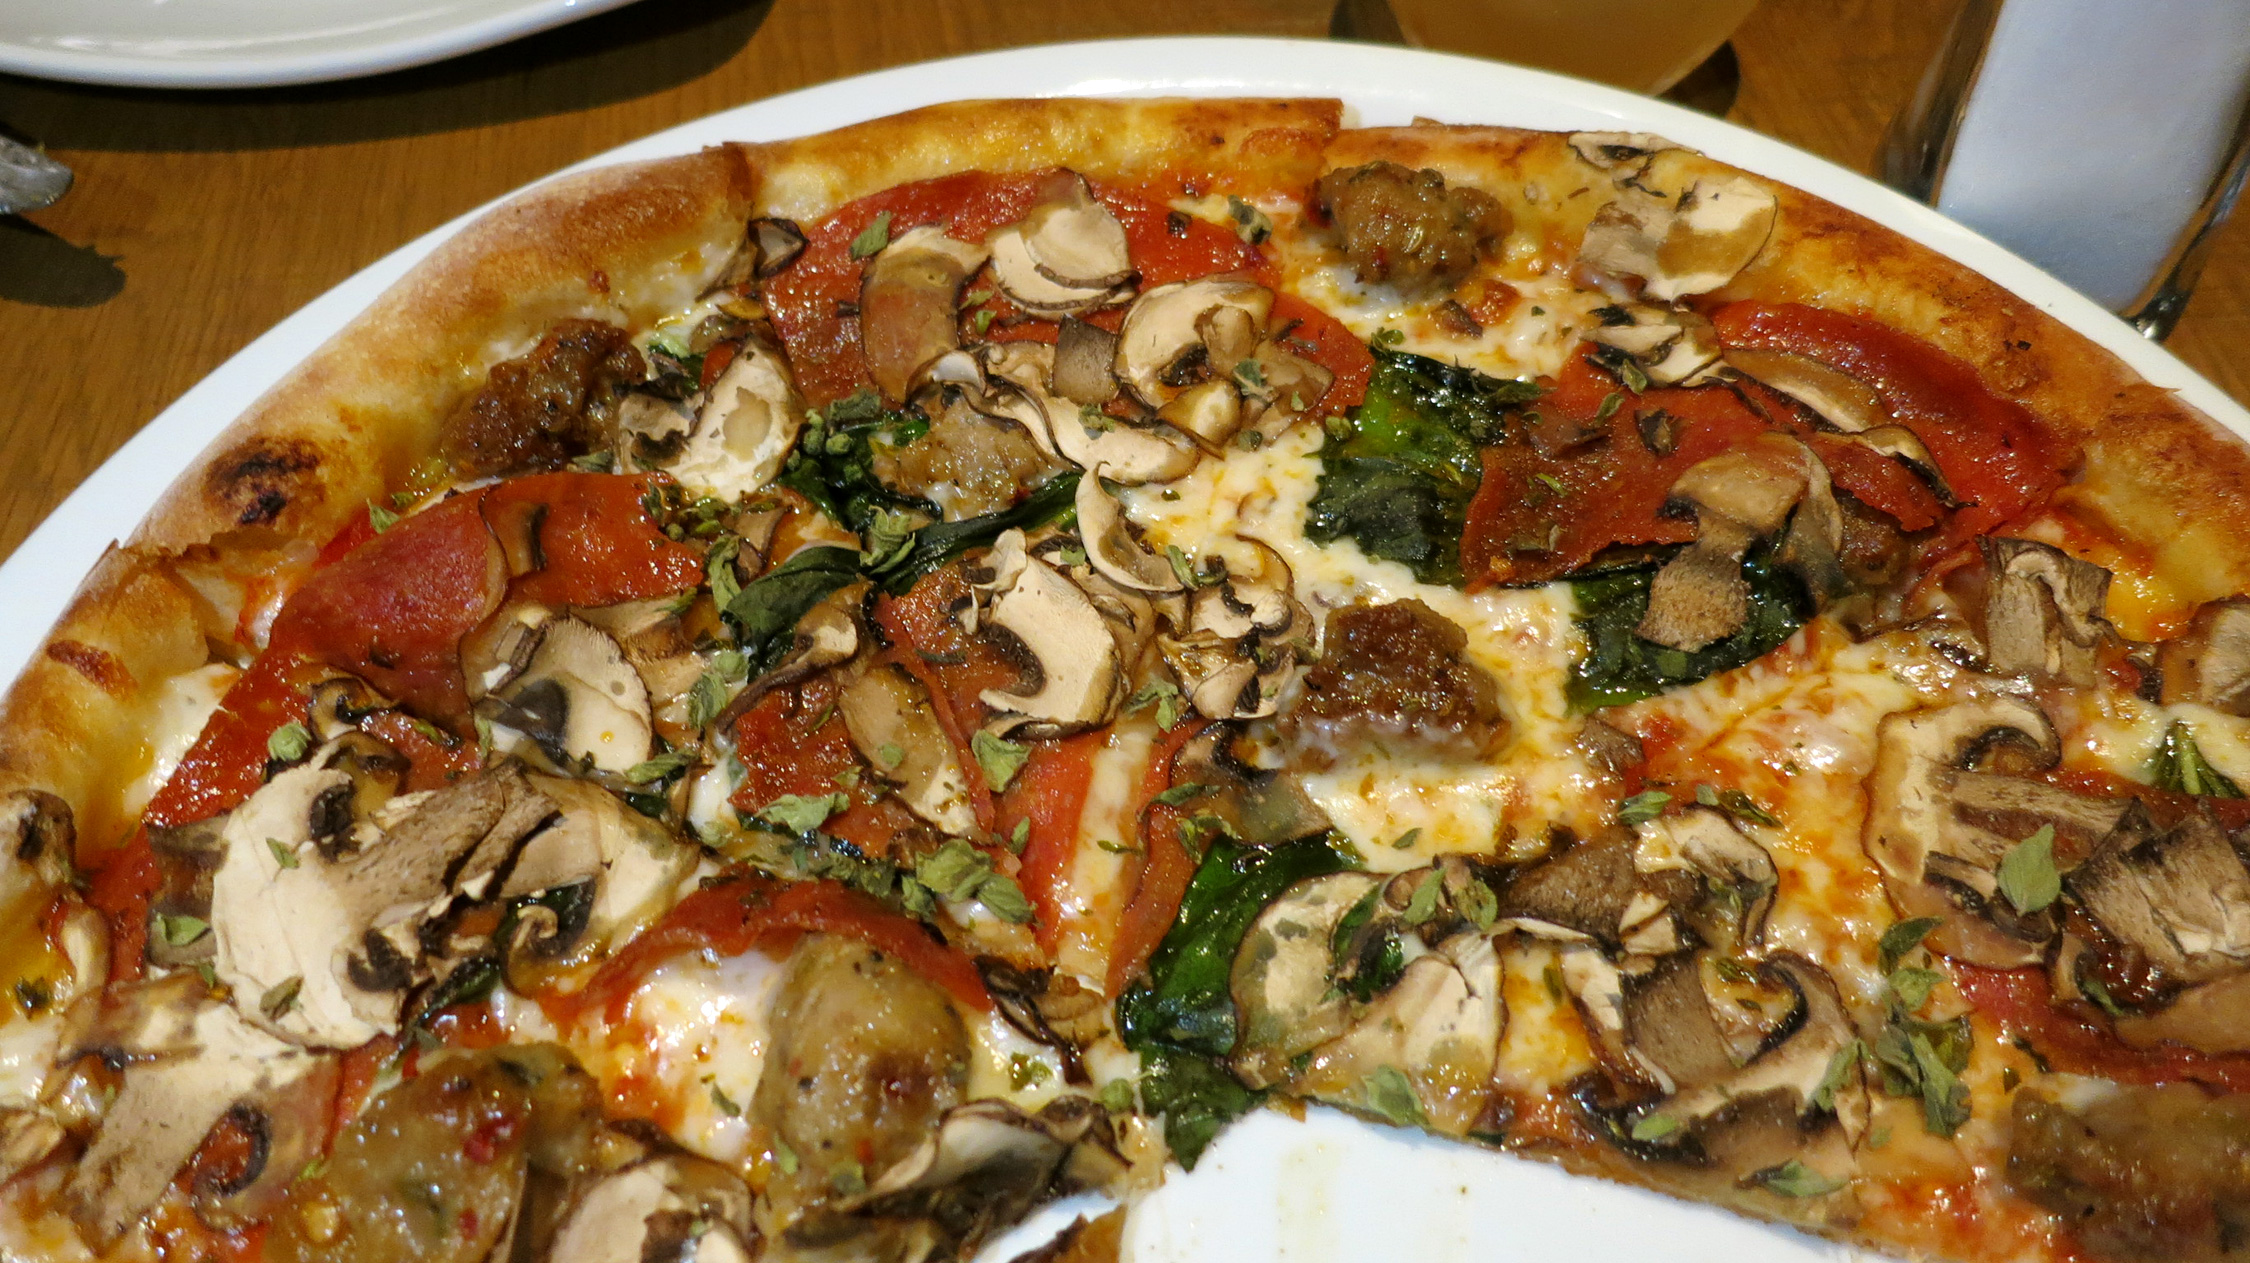 California Pizza Kitchen Hand Tossed Wild Mushroom Pizza